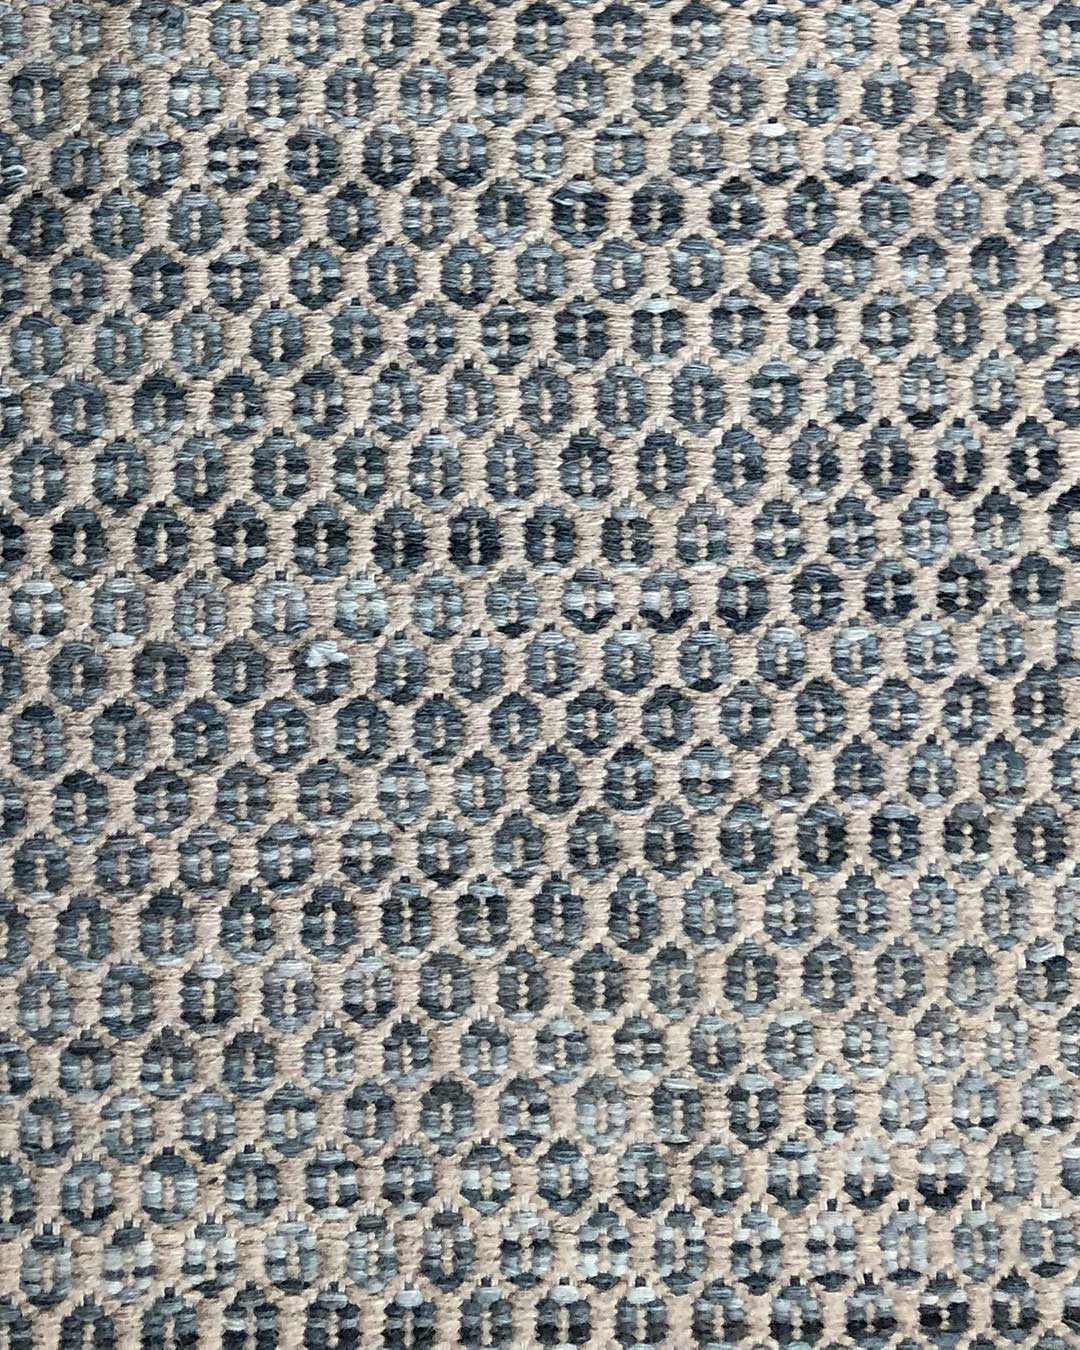 Detailed image of textured Plait Hive rug in grey colour